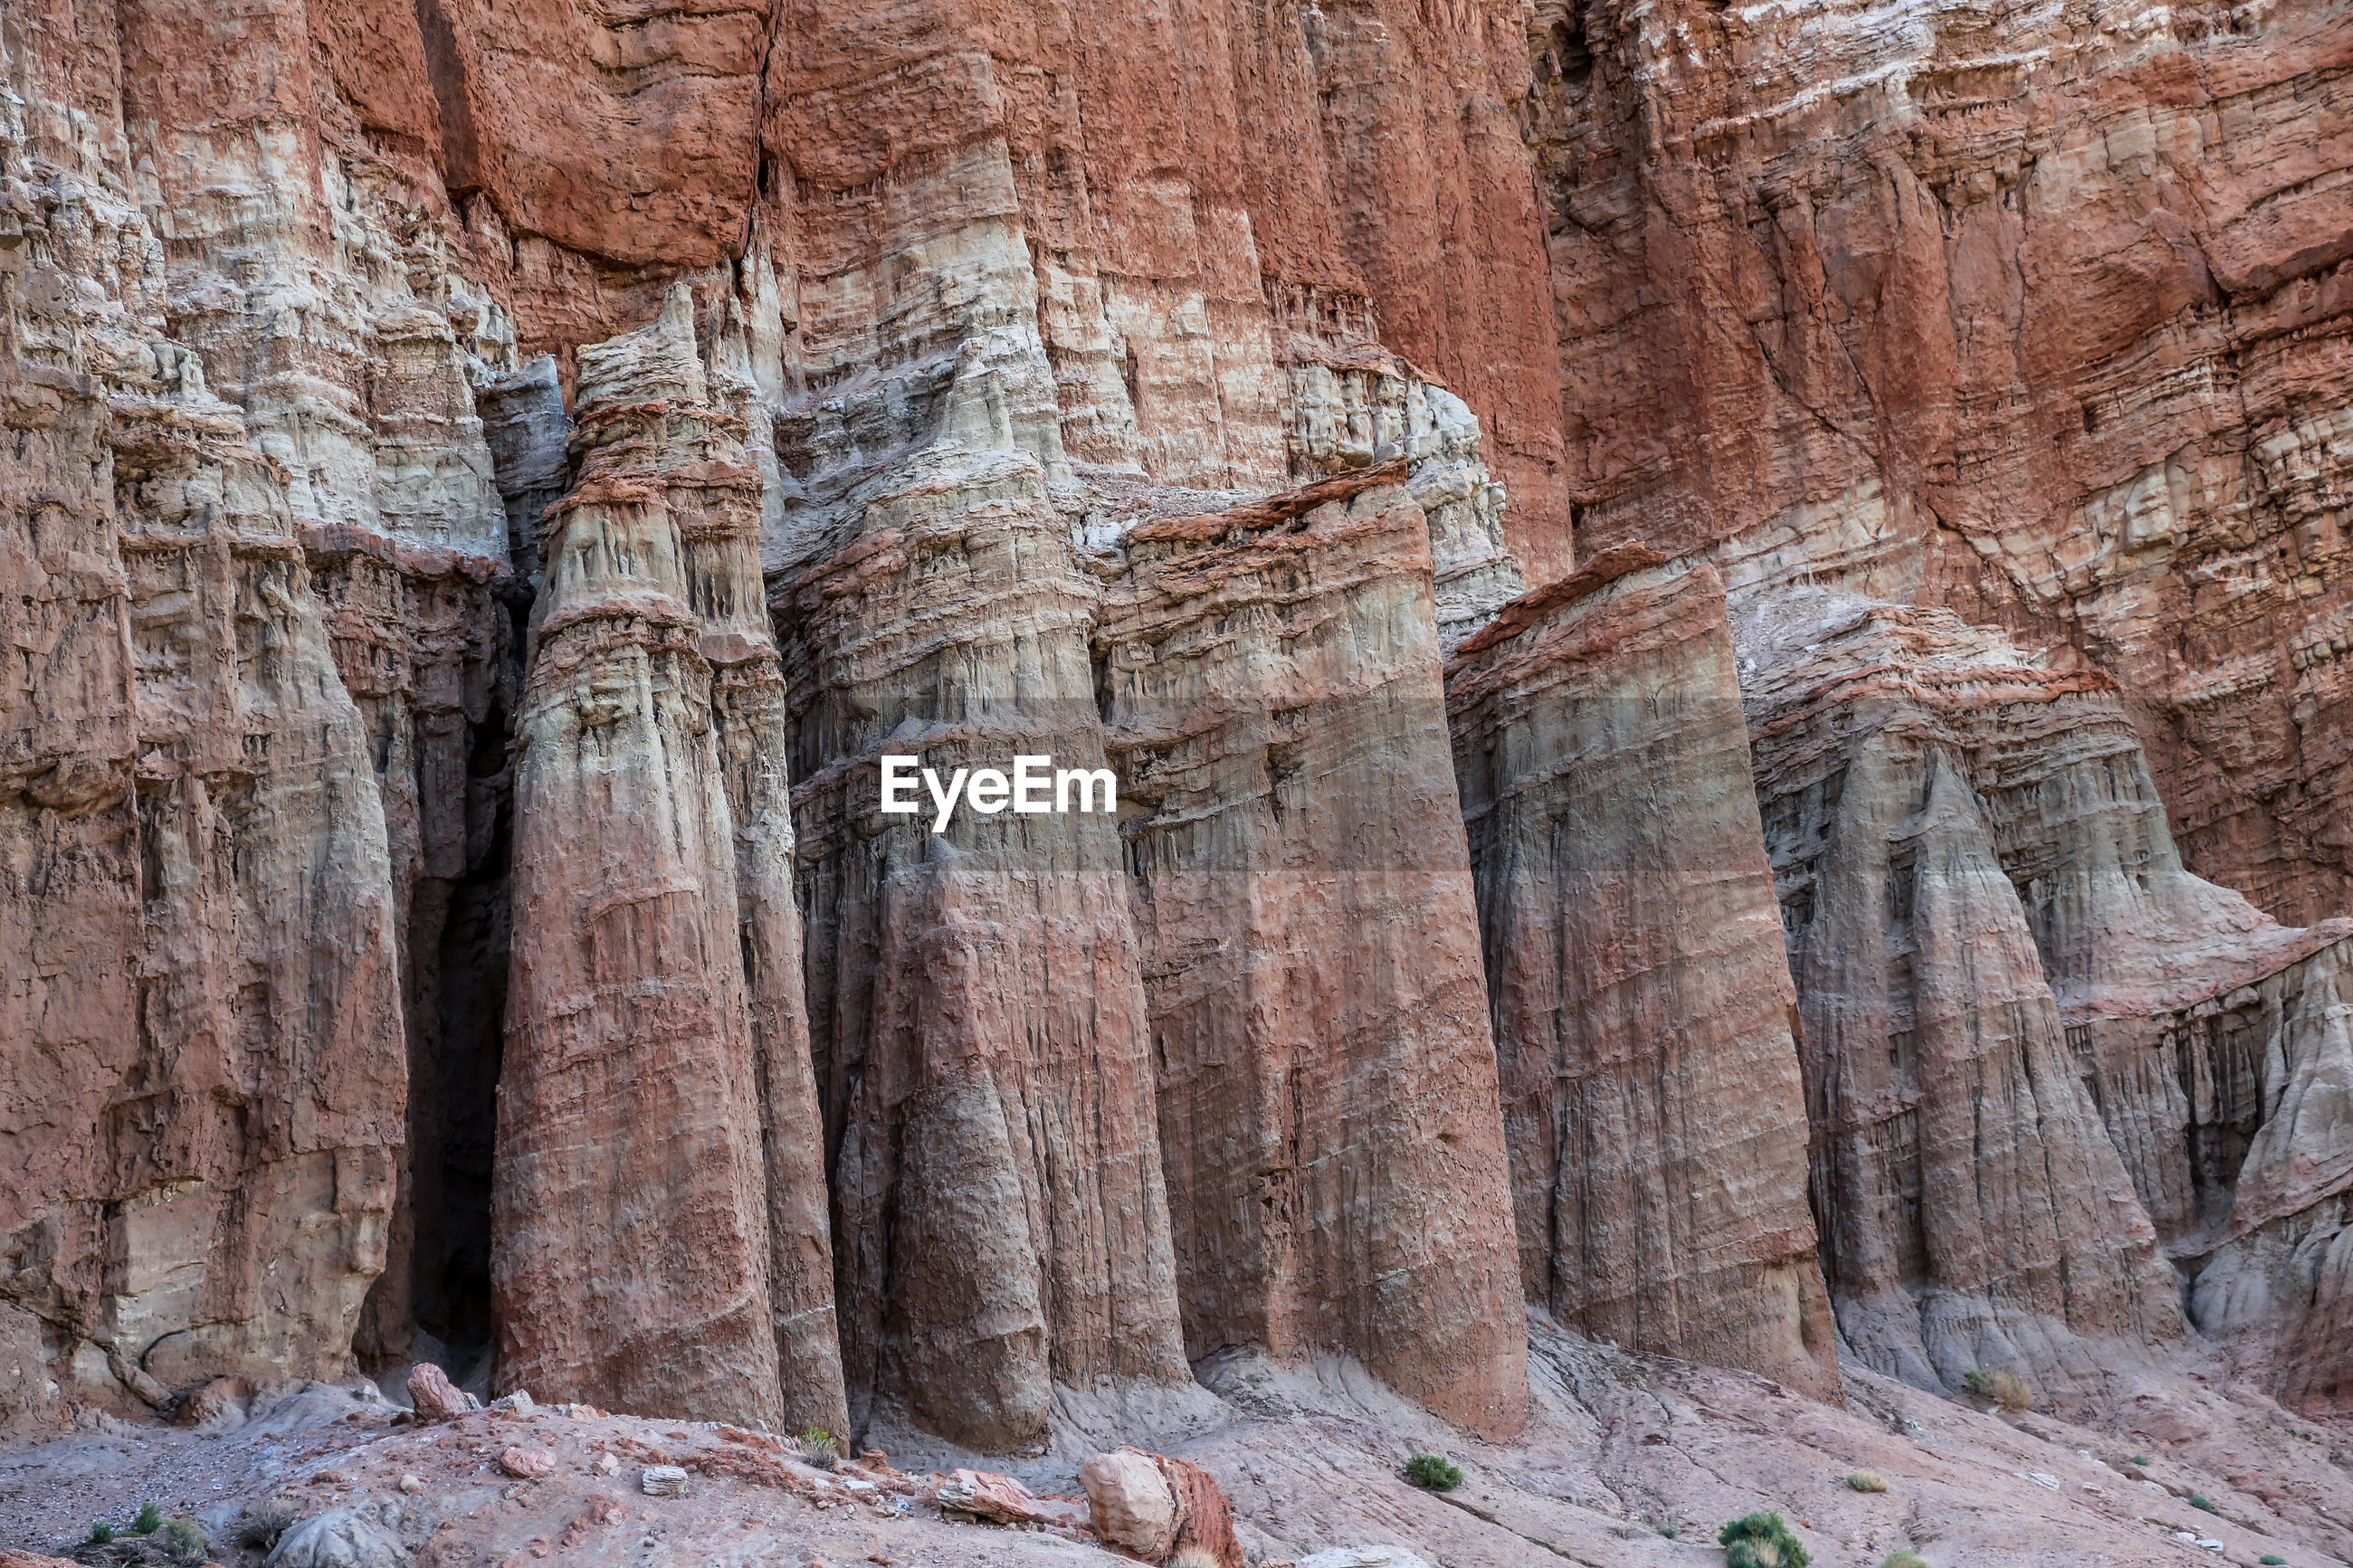 FULL FRAME SHOT OF ROCK FORMATIONS IN A CANYON